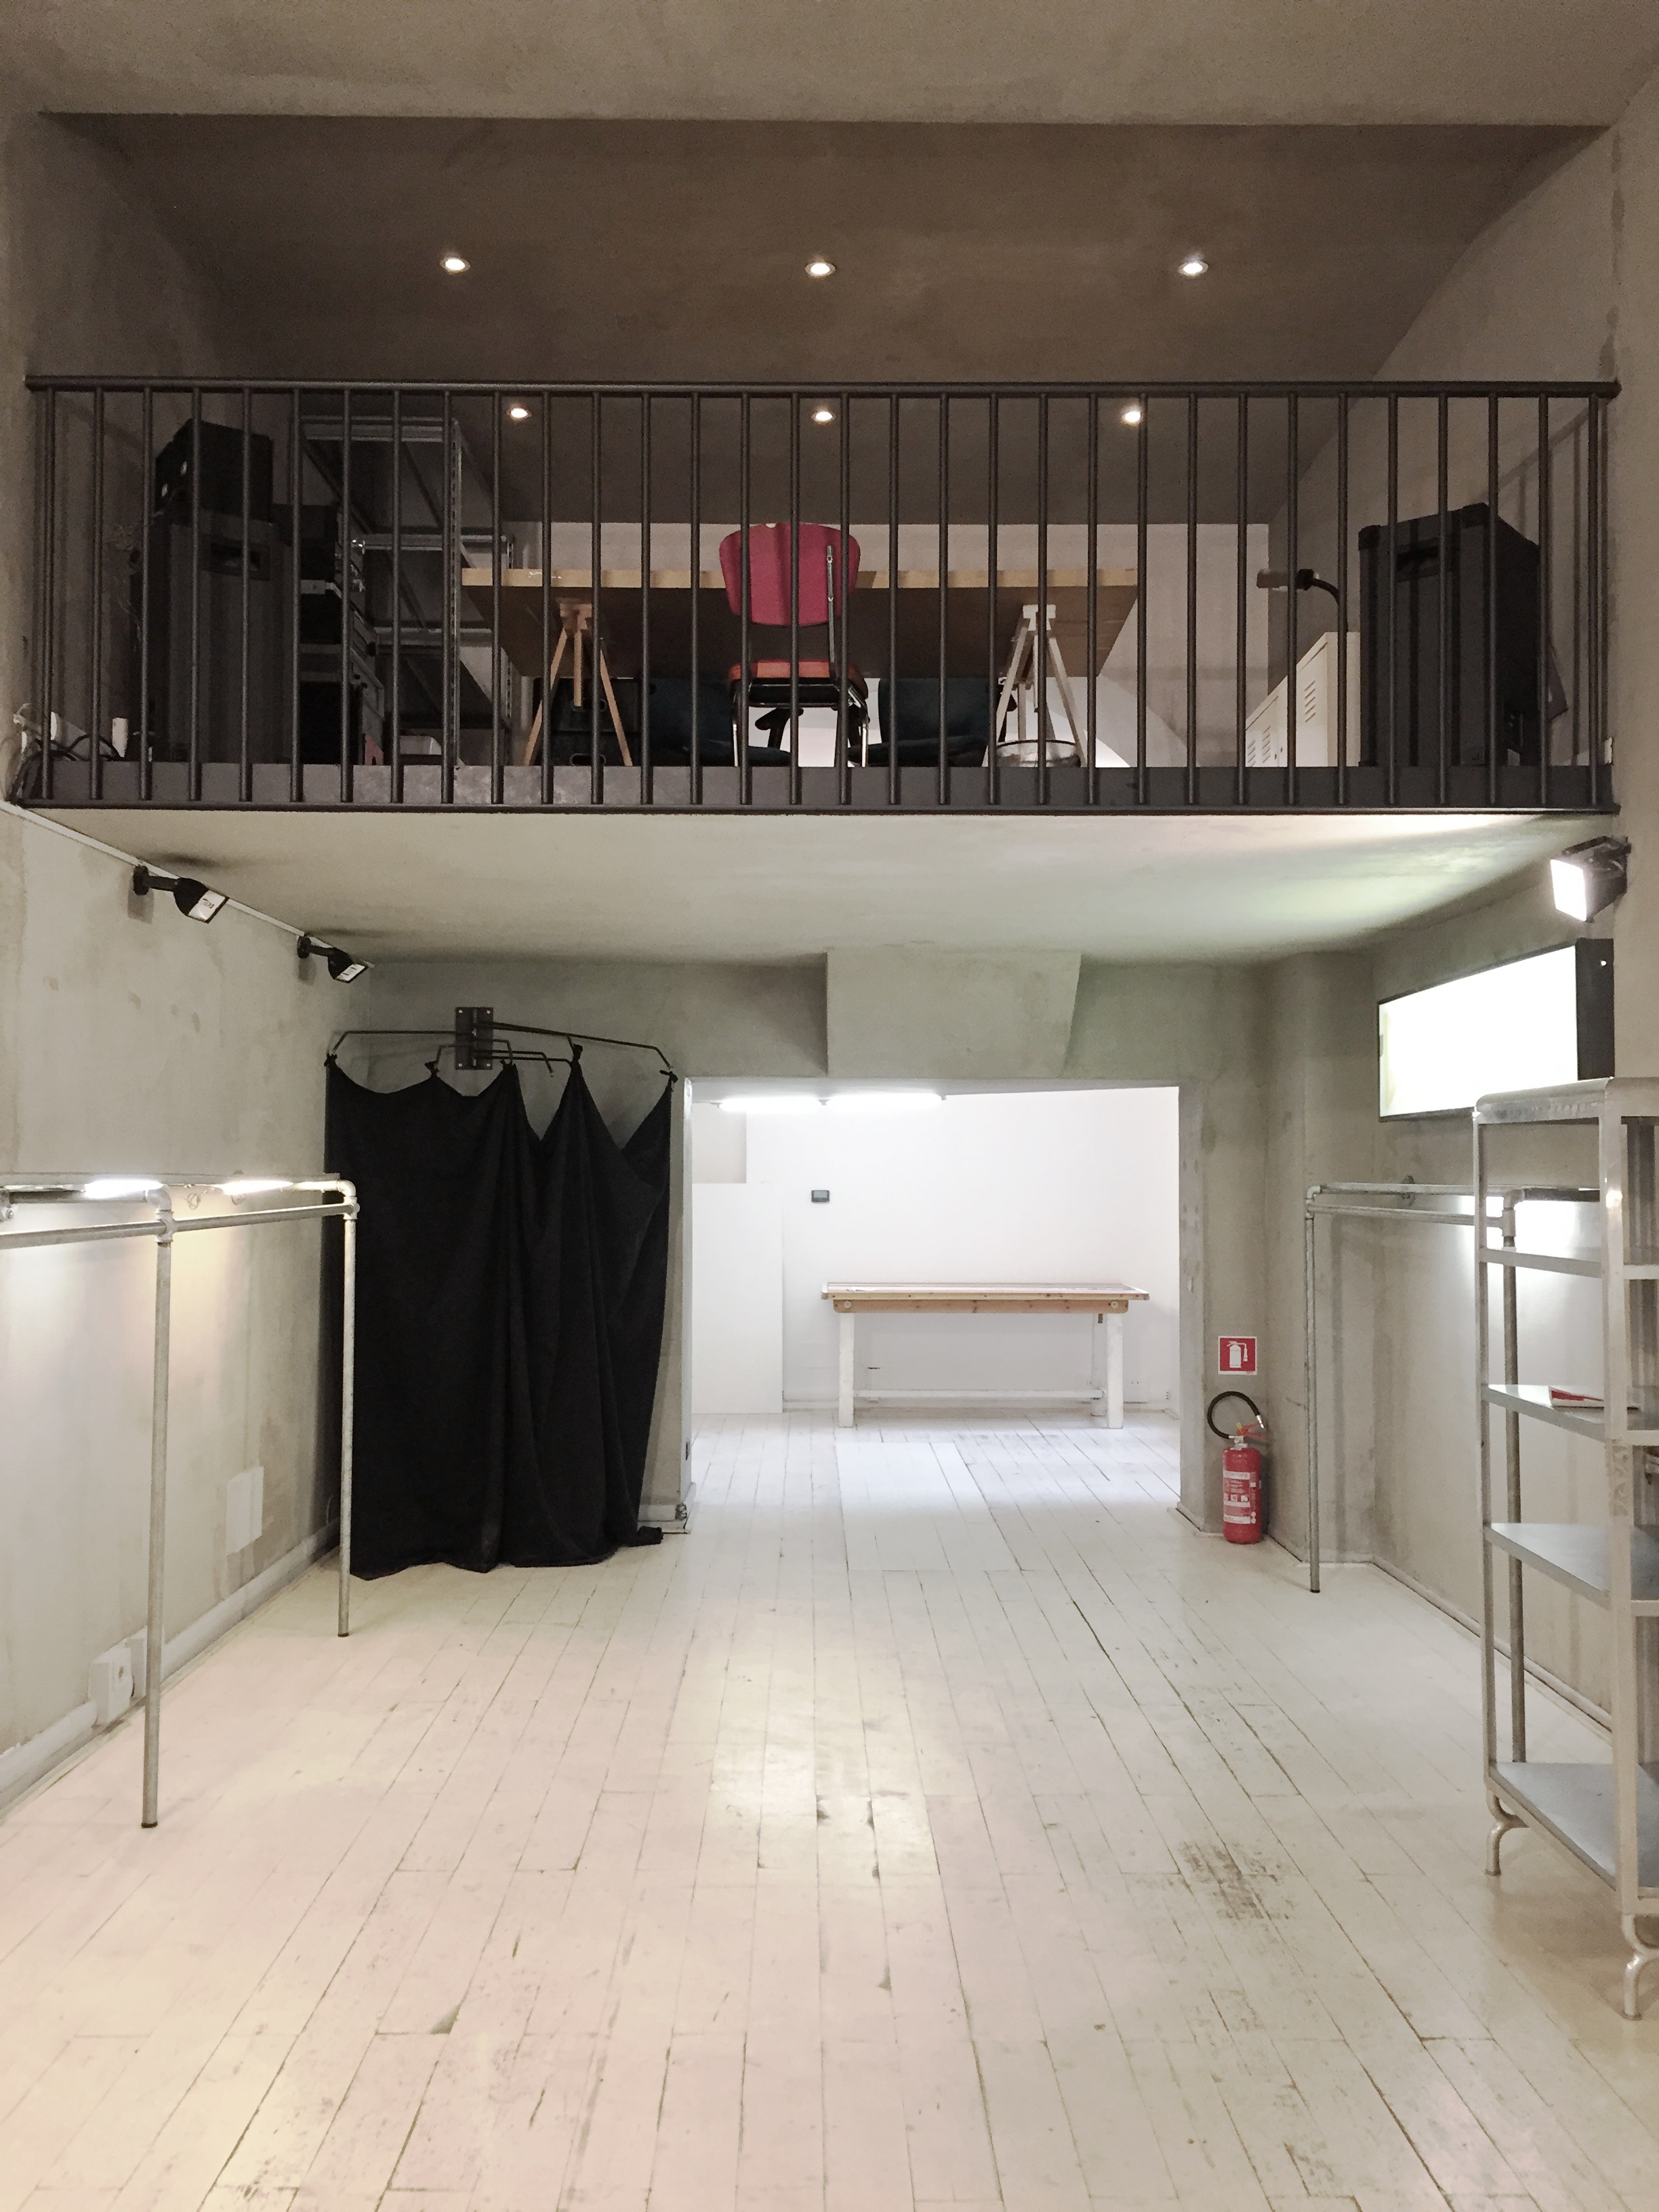 Tortona 5 - Loft, Negozio, Showroom di 50mq in Via Tortona 5 | location disallestita 2